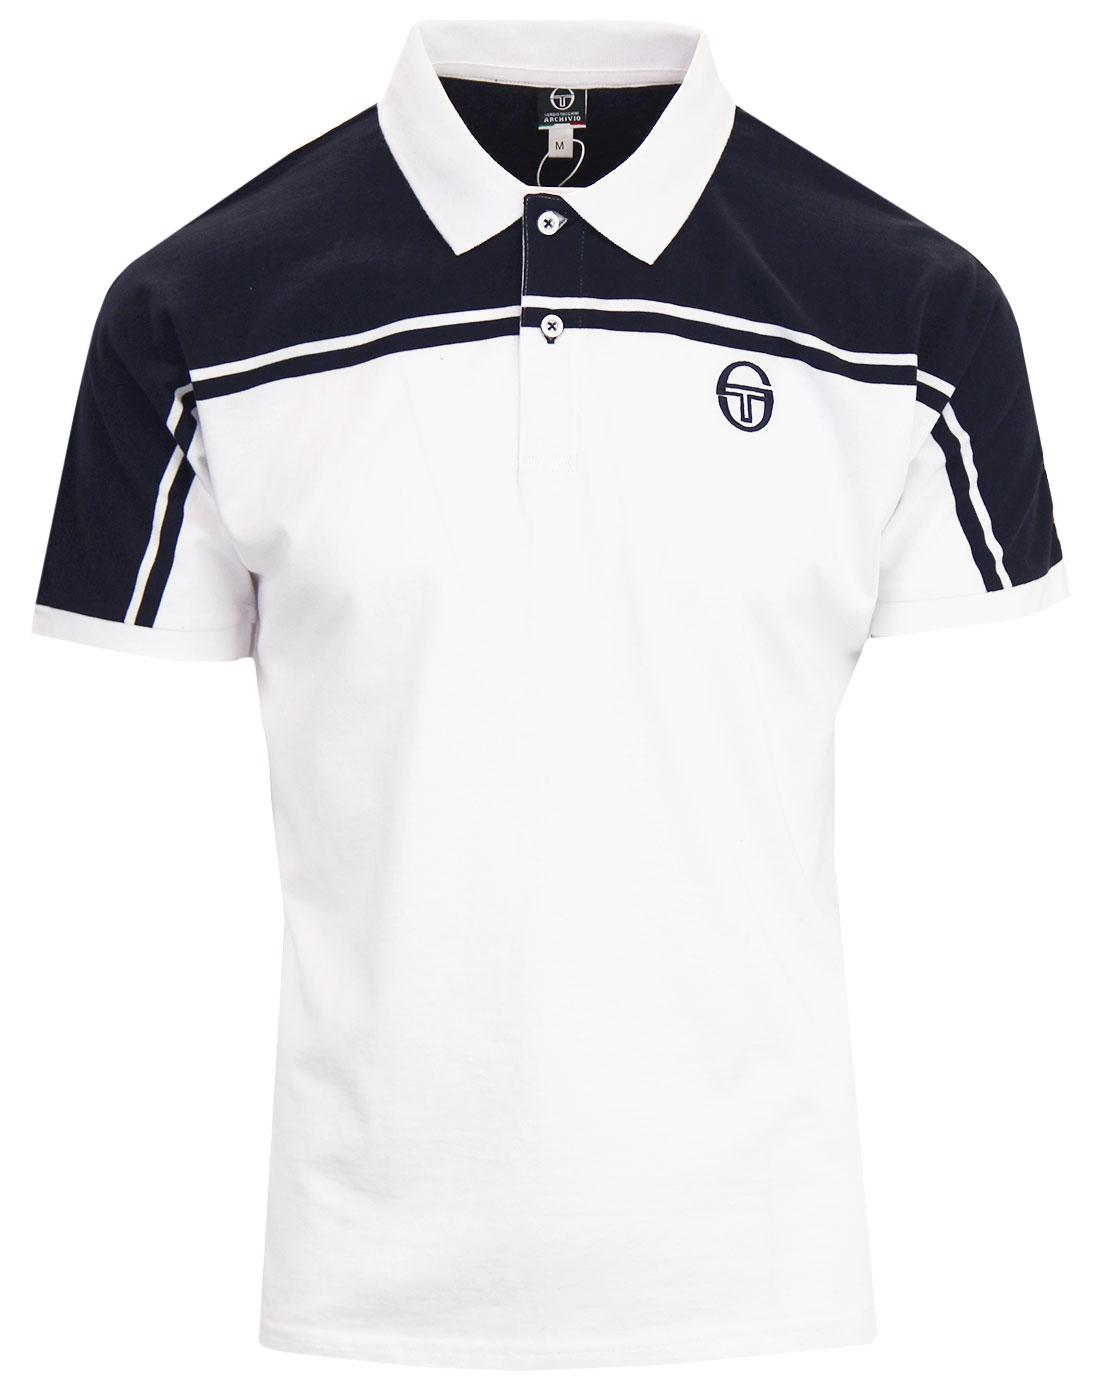 New Young Line SERGIO TACCHINI 80s Tennis Polo (N)